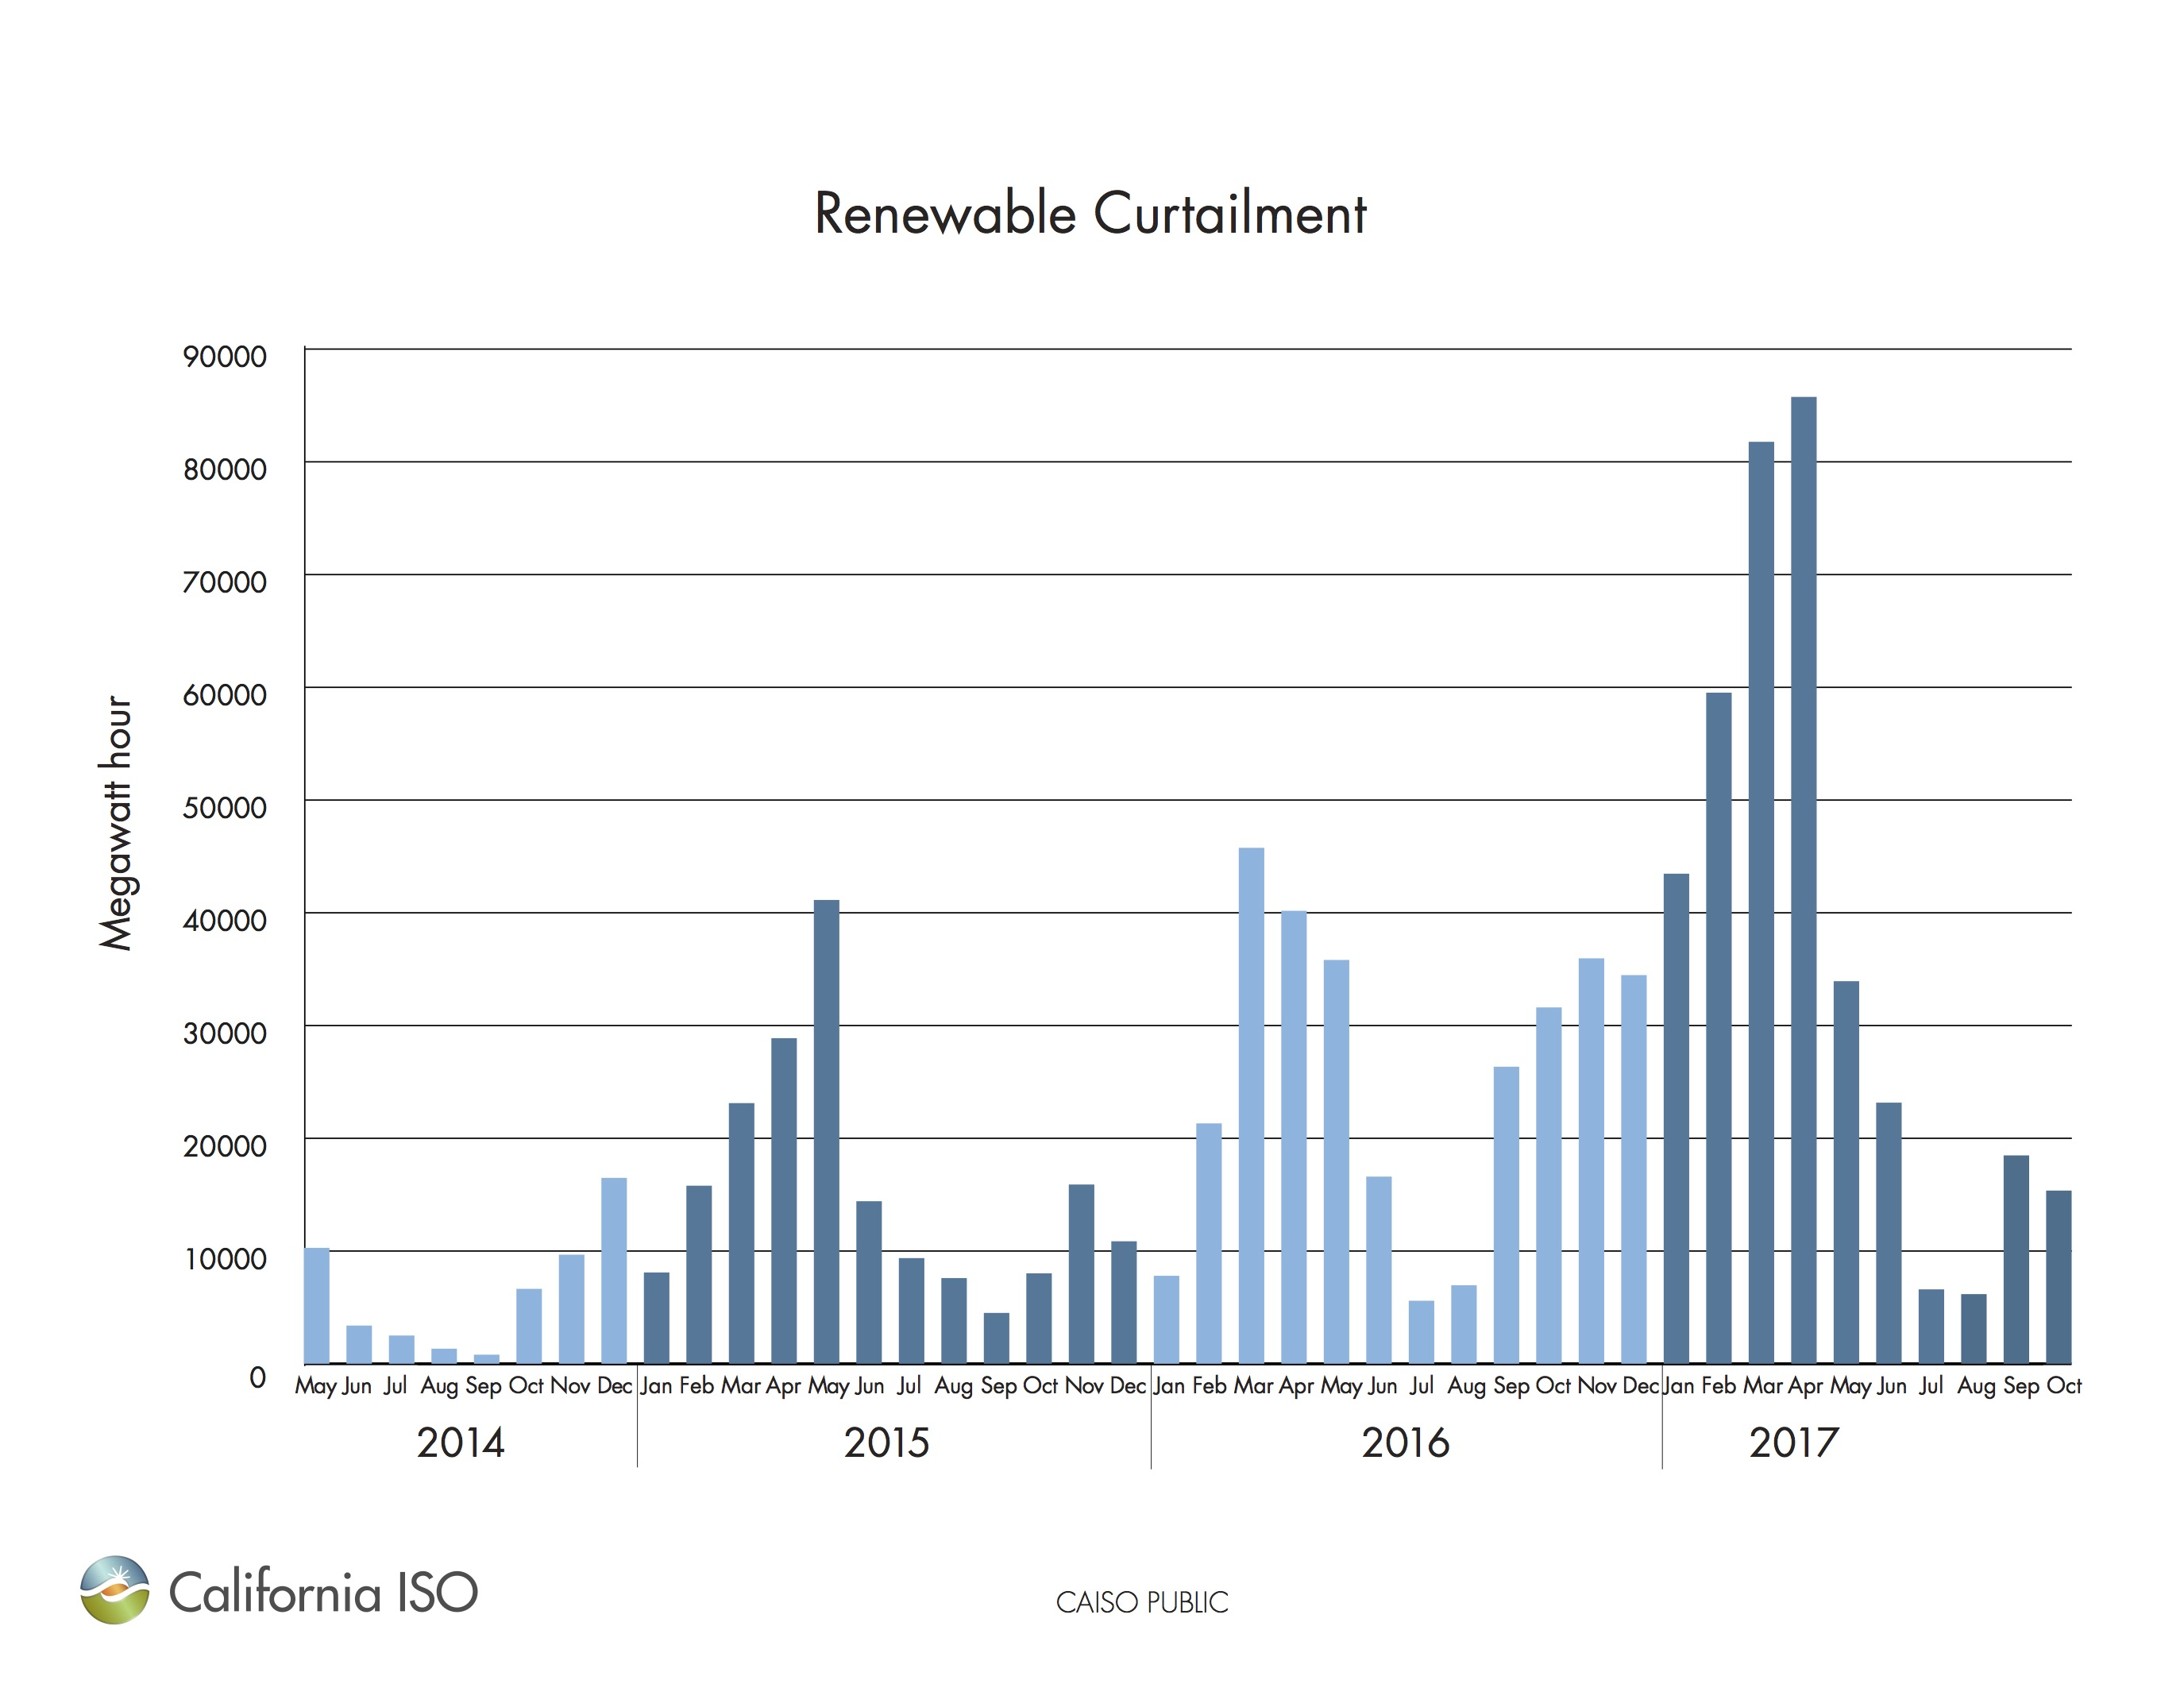 Debunking Dr Bossels Anti Hydrogen Thesis Fuelcell Flow Diagram Click On The Image To Enlarge Statistics Of Renewable Generation Energy Curtailed Is Wasted That Could Be Put Use As Stored You Can See In Graph